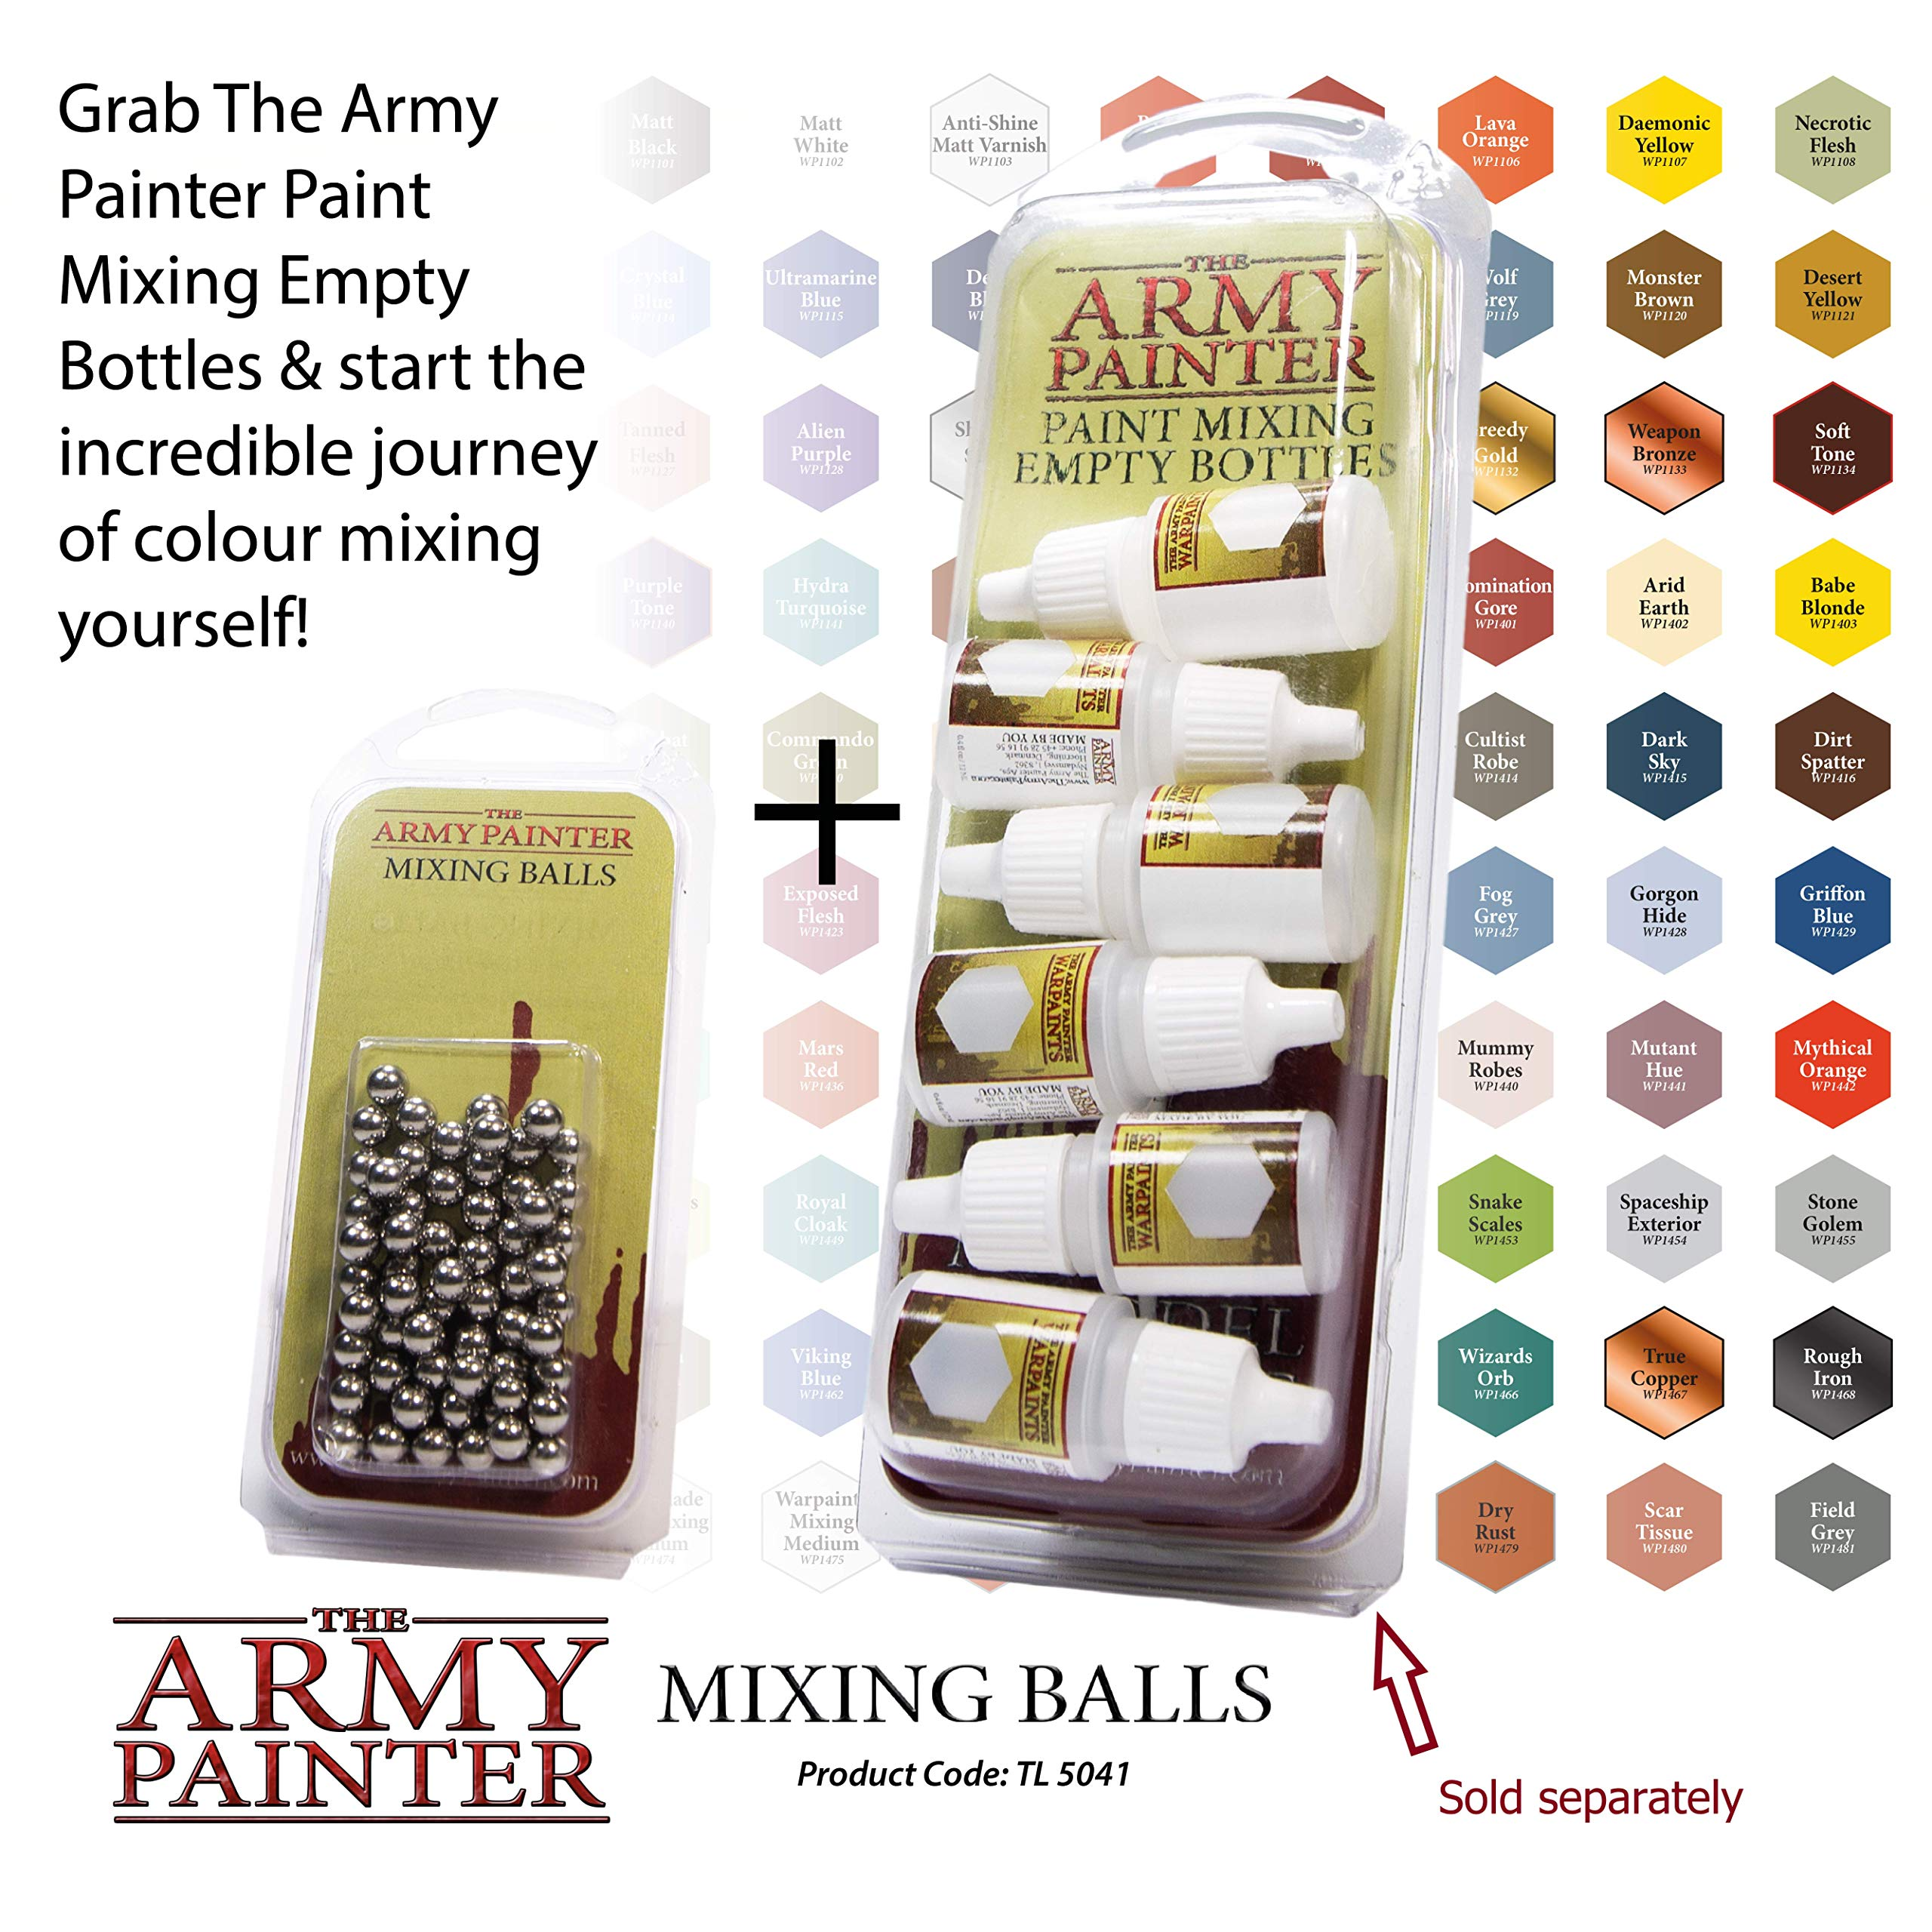 The Army Painter Paint Mixing Balls - Rust-proof Stainless Steel Balls for Mixing Model Paints - Stainless Steel Mixing Agitator Balls, 5.5mm/apr. 0.22'', 100 Pcs by The Army Painter (Image #7)